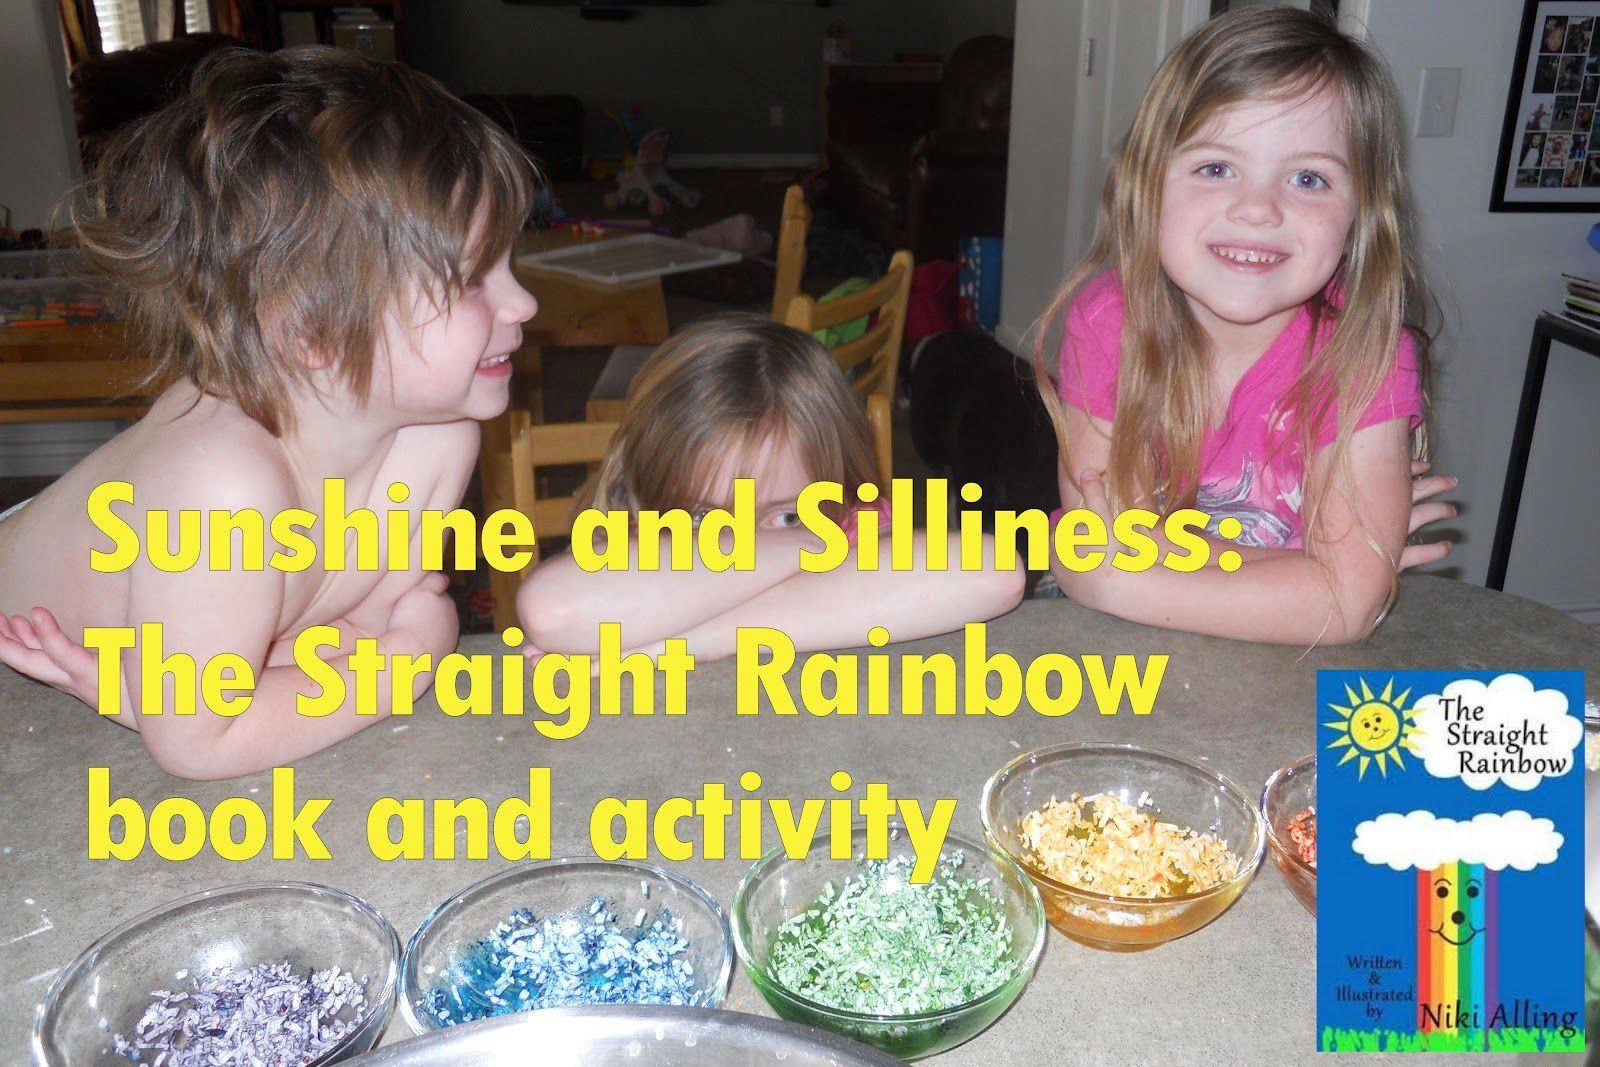 Sunshine and Silliness: Mom School: The Straight Rainbow, by Niki Alling